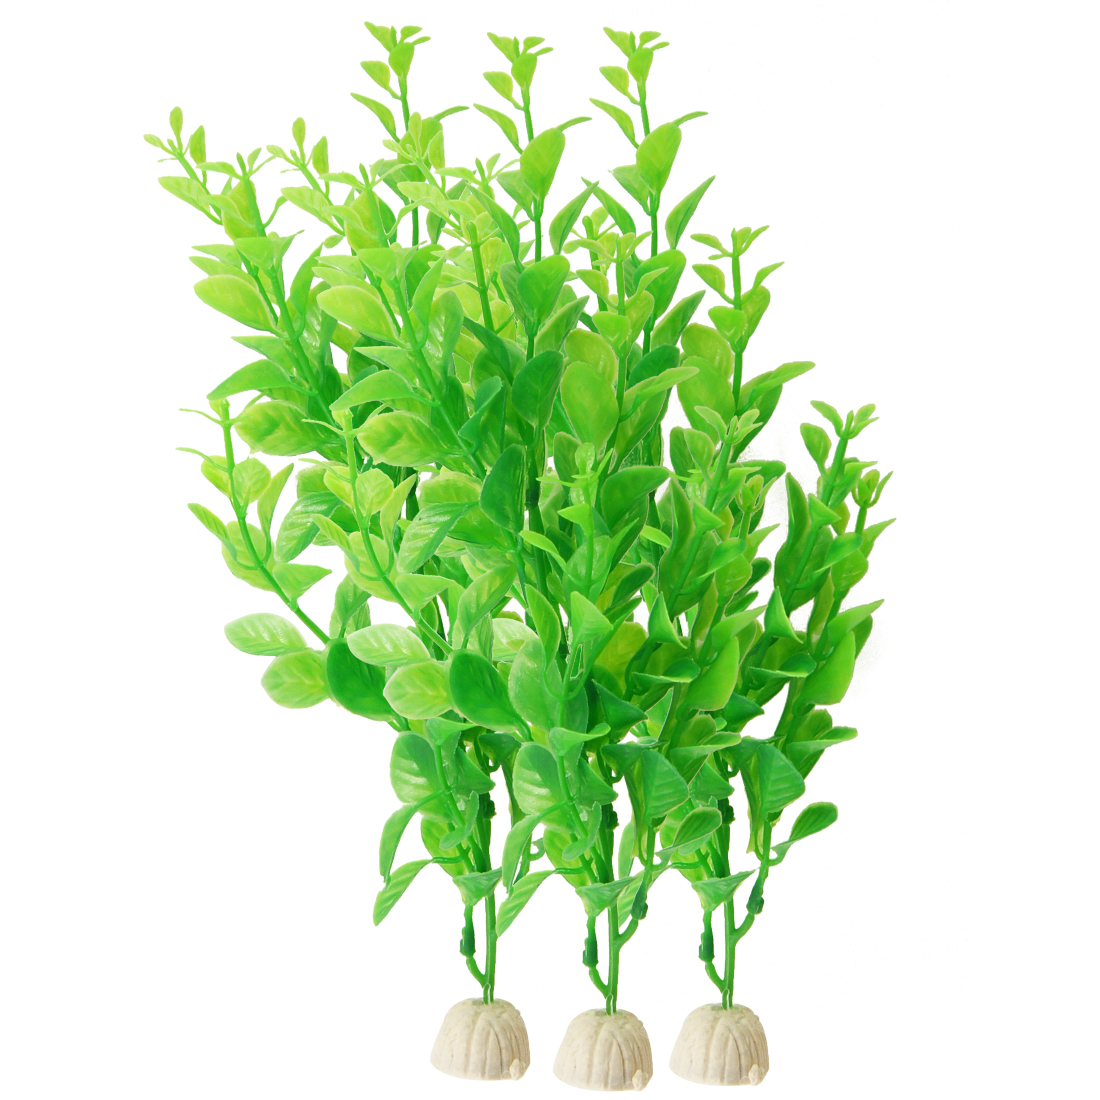 "Aquarium Green Plastic Artificial Aquatic Grass Plant Decor 9.8"" Height 3 Pcs"